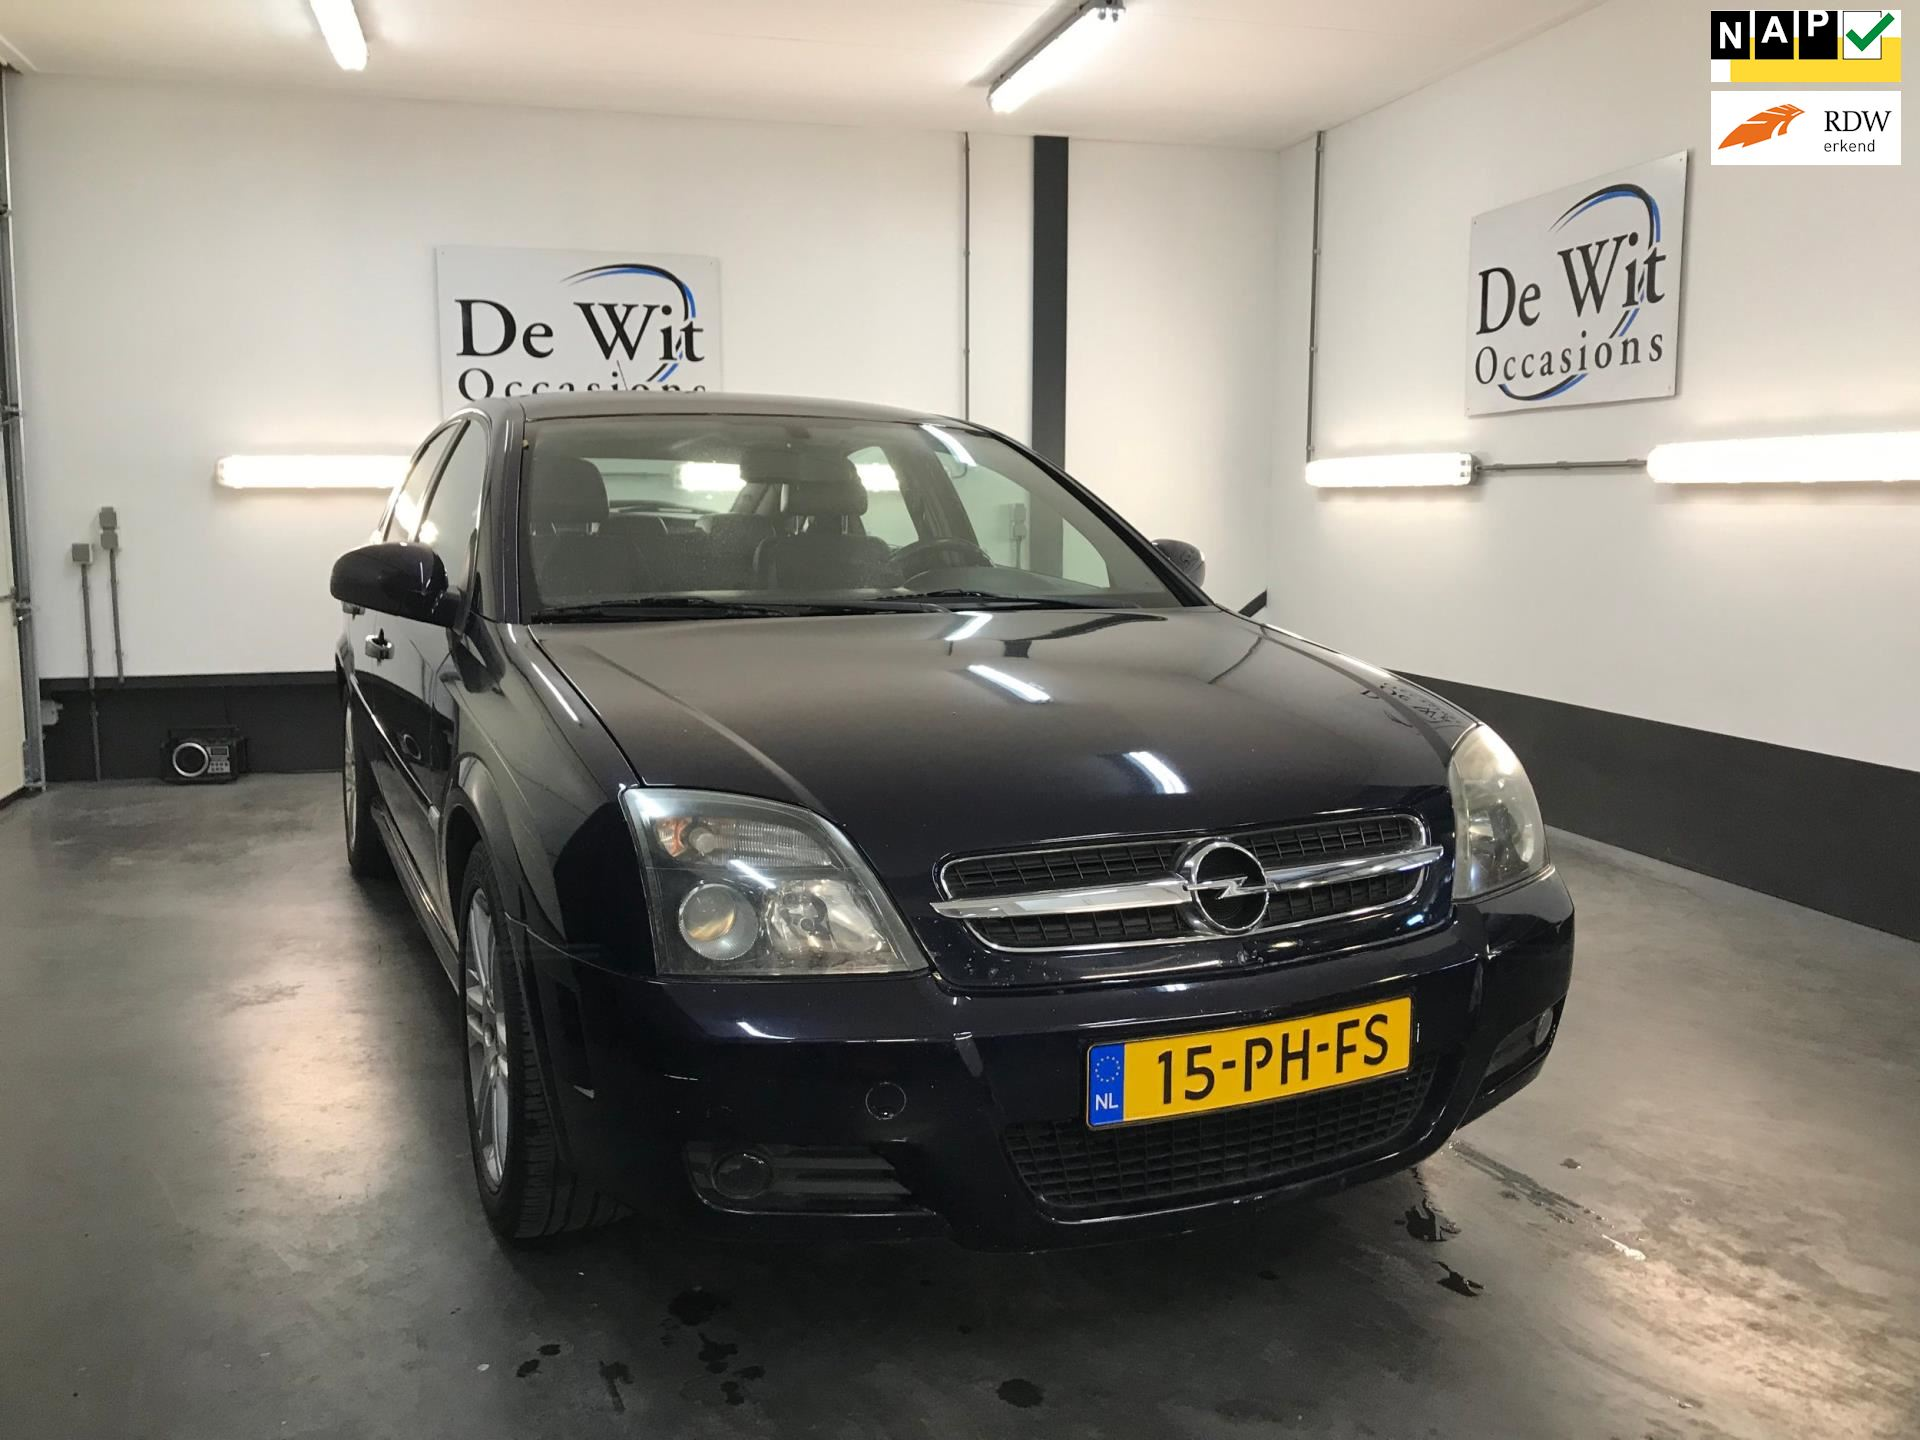 Opel Vectra GTS occasion - De Wit Occasions